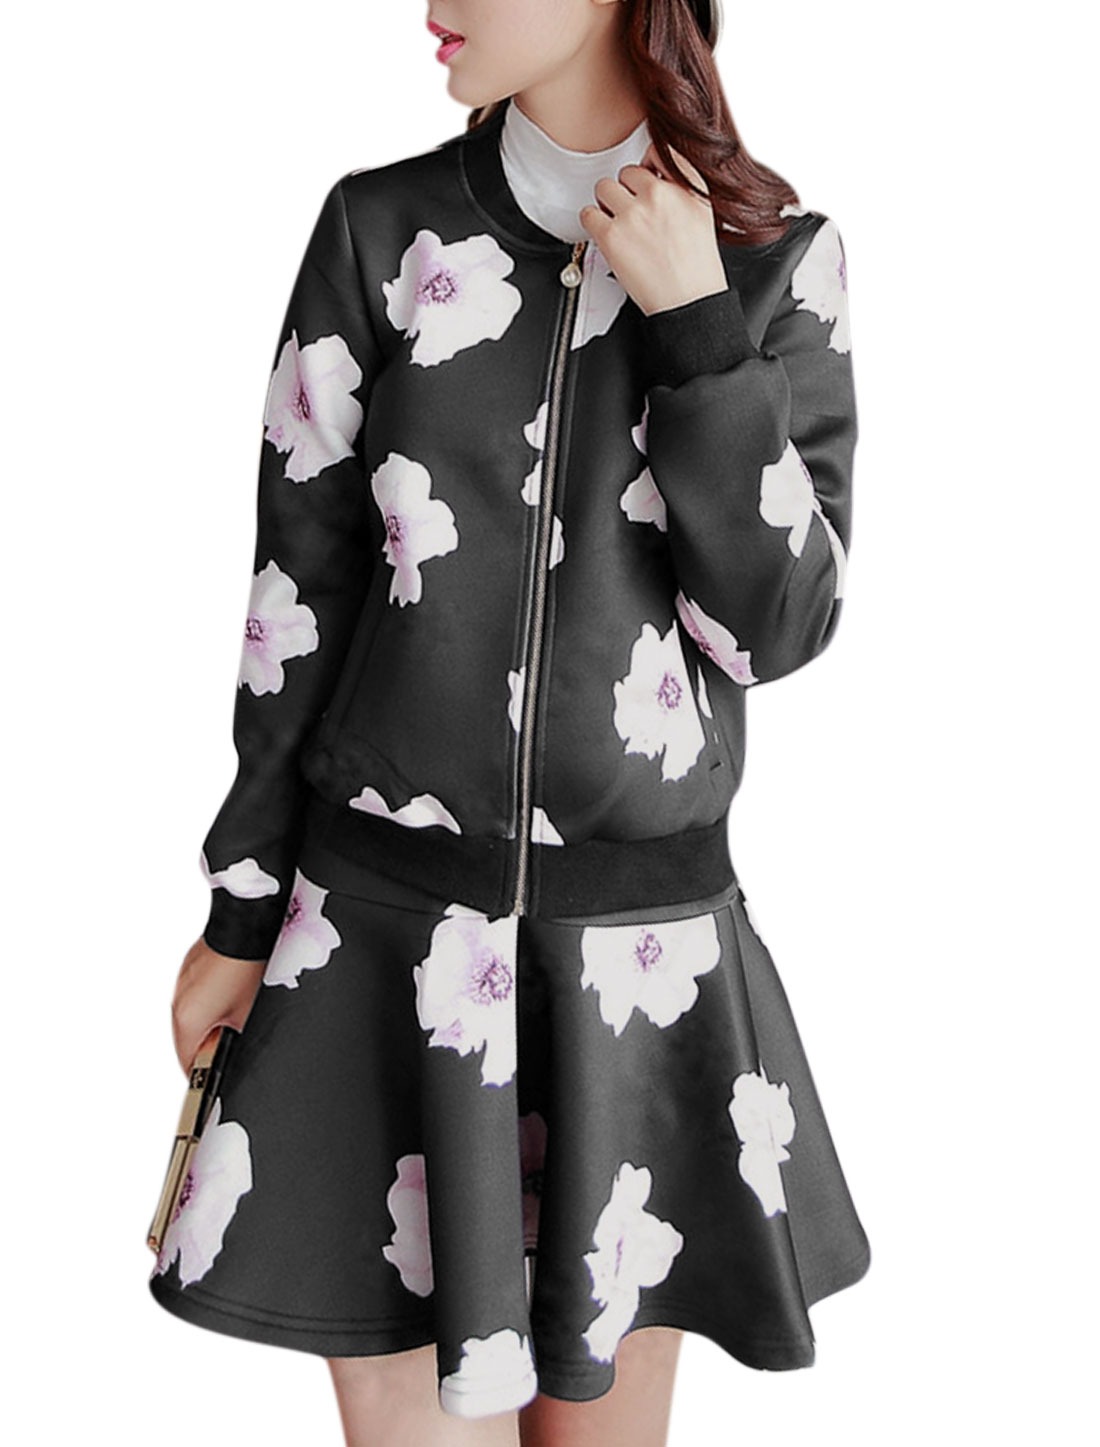 Women Floral Prints Zip Up Casual Jacket w Fit w Flare Skirt Set Black S